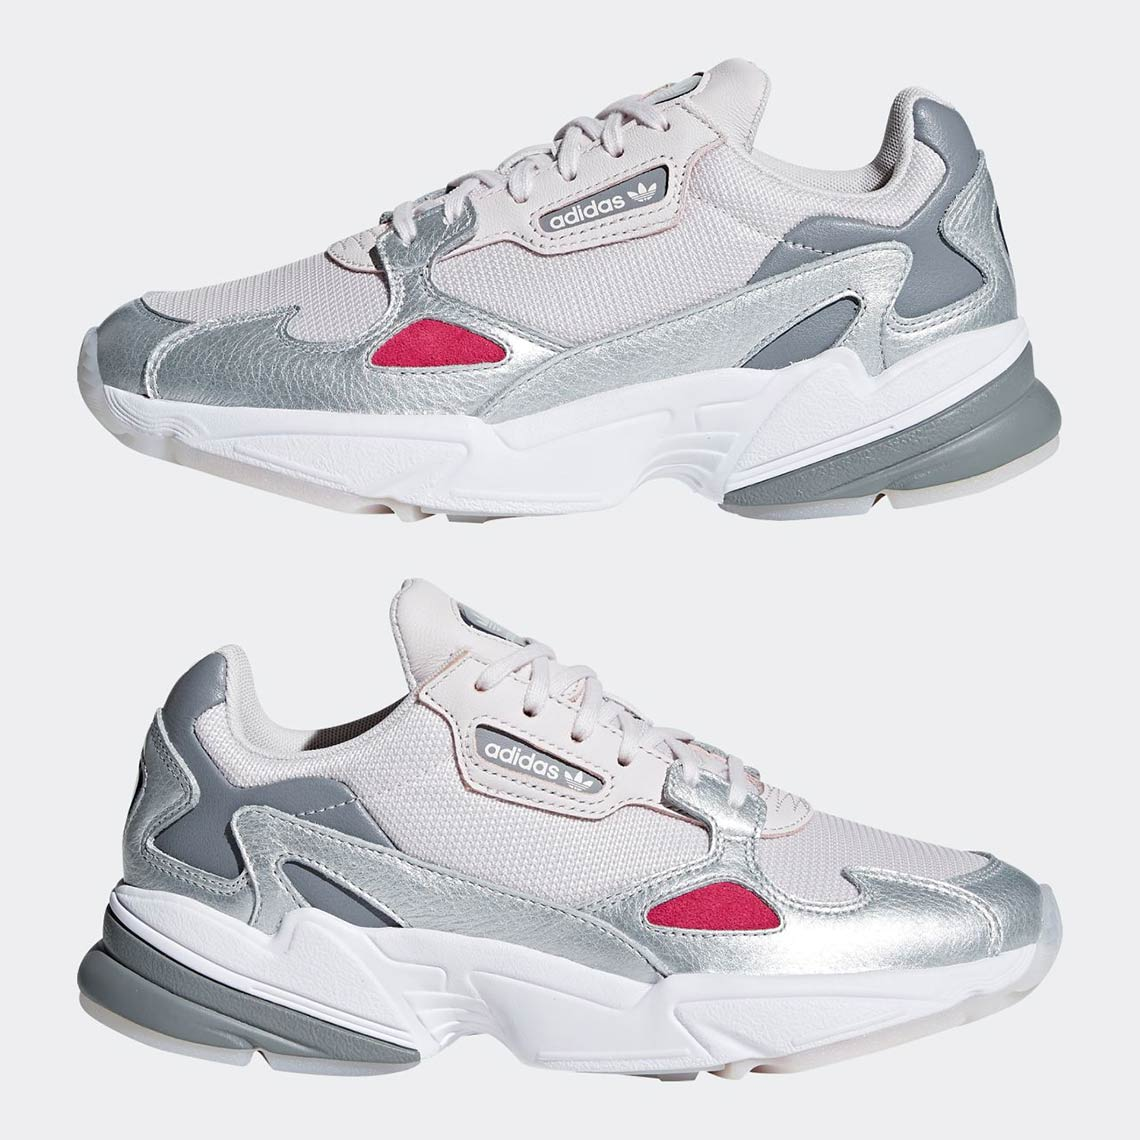 Yeezy Boost Supply >> adidas Falcon Women's Silver + Pink Release Info   SneakerNews.com